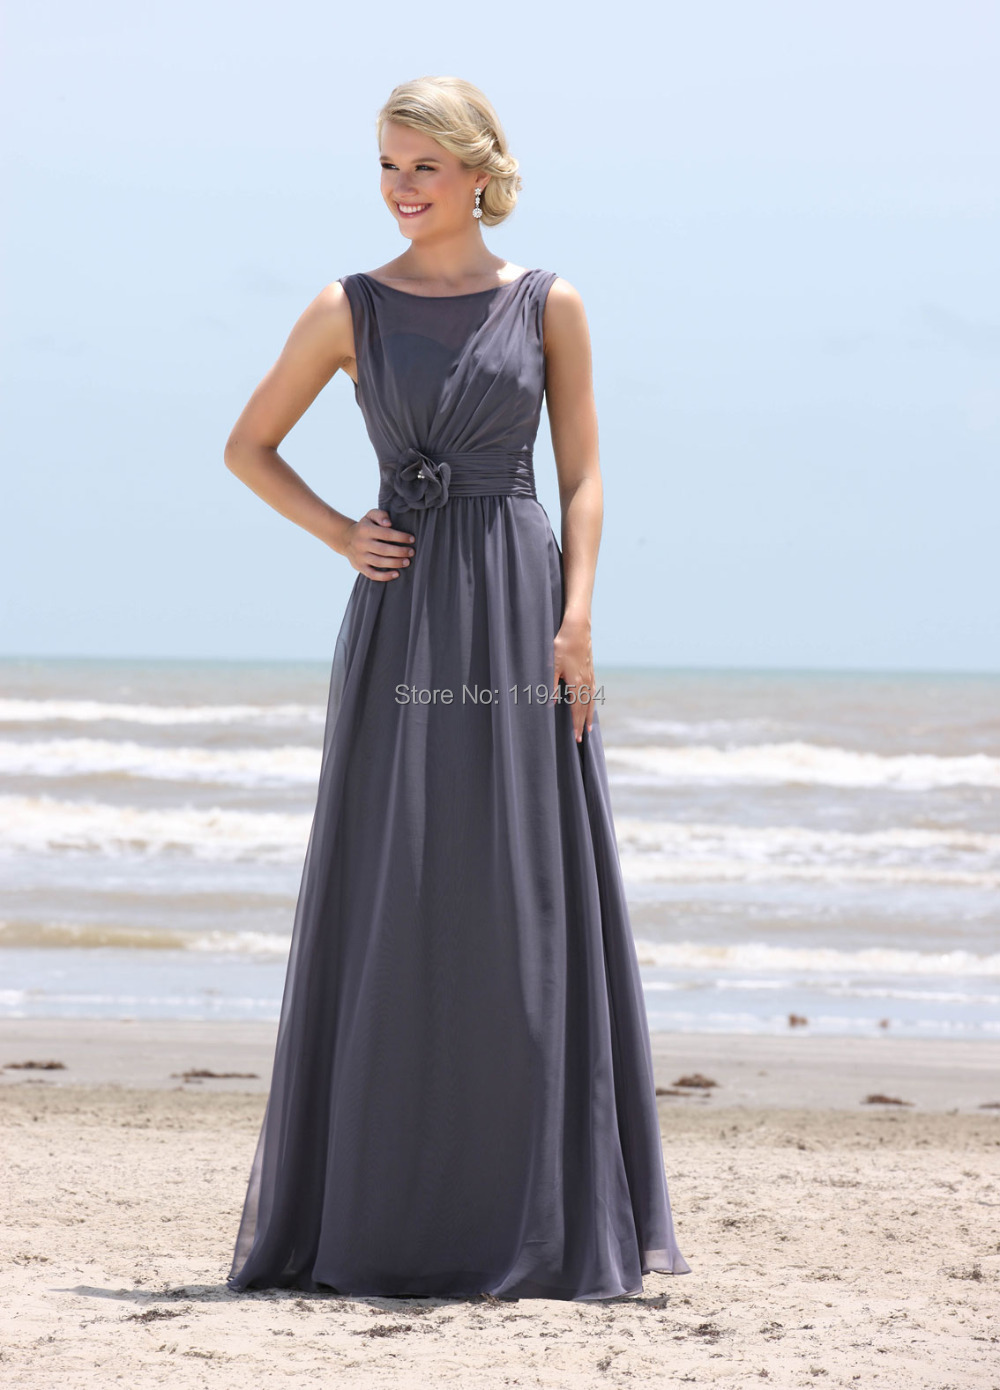 Popular Grey Chiffon Bridesmaid Dresses-Buy Cheap Grey Chiffon ...